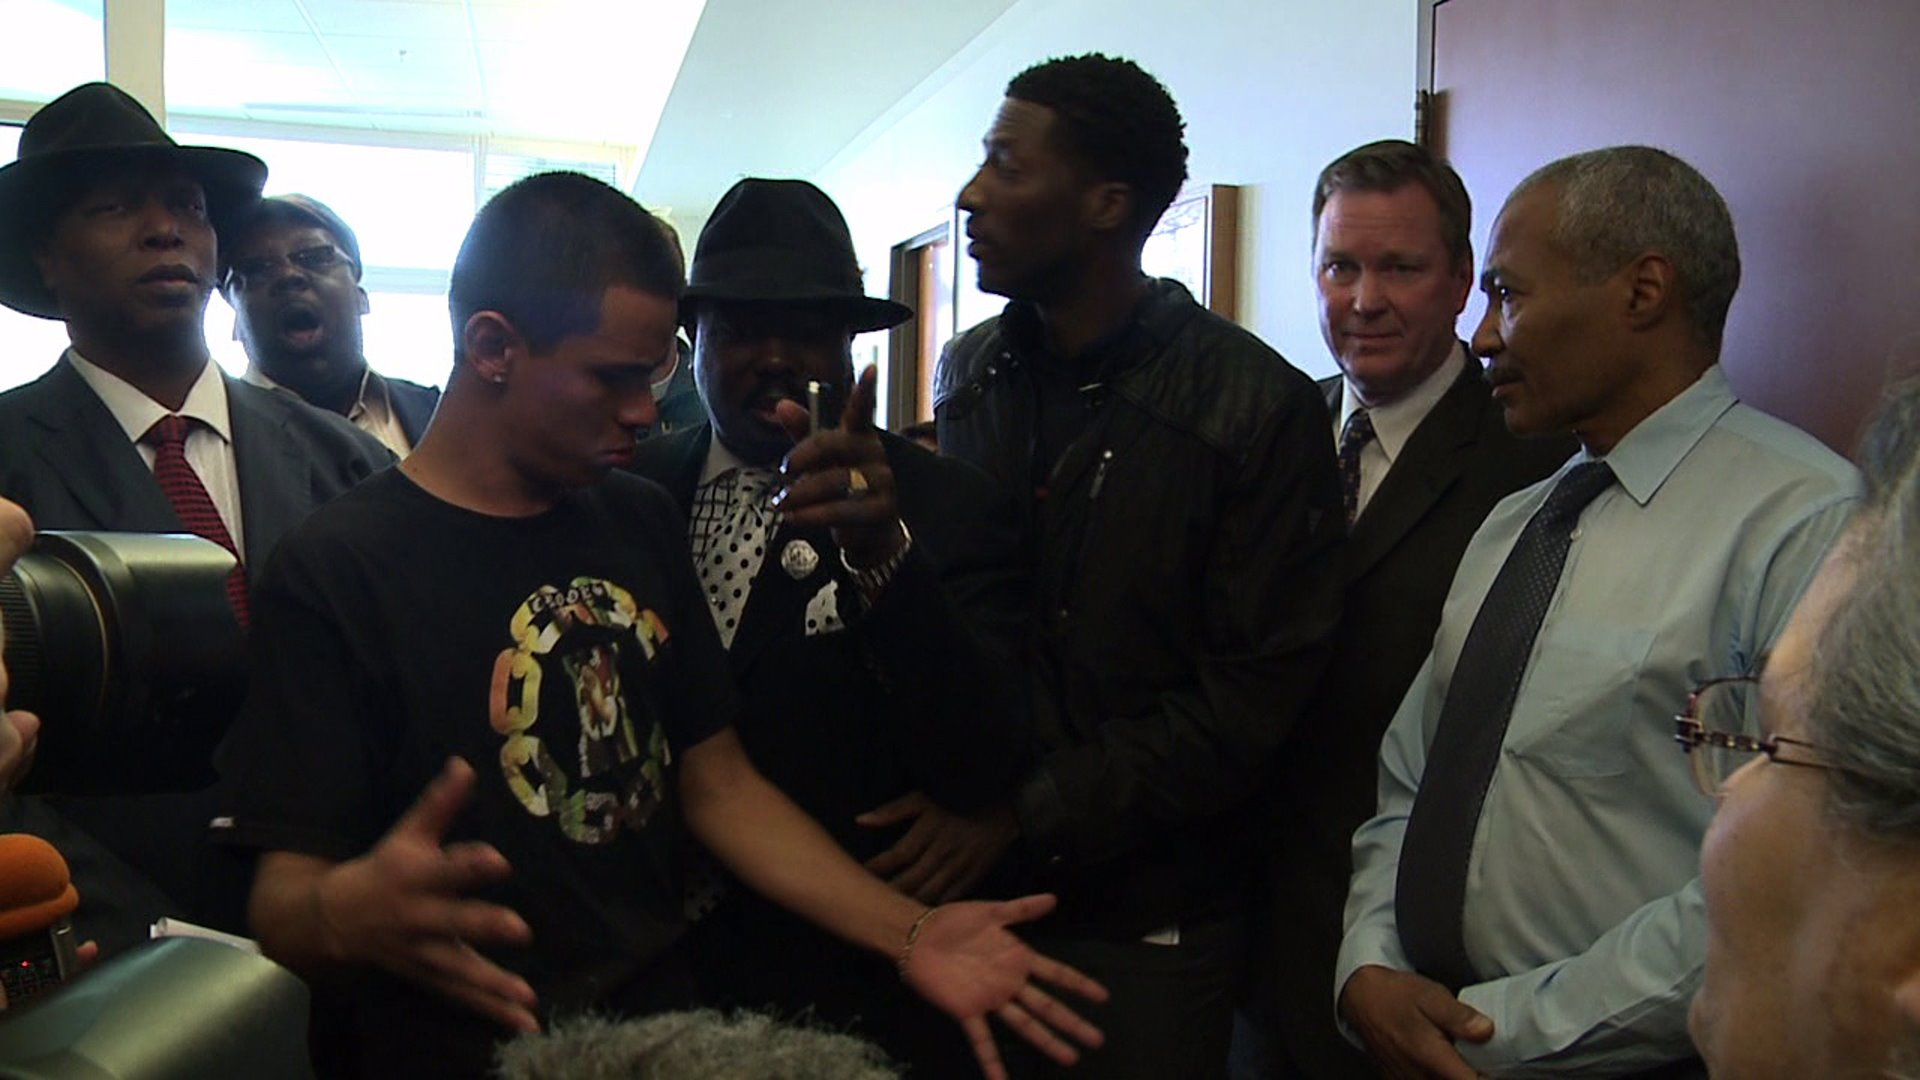 Protesters in DA's office after girl killed in police shooting